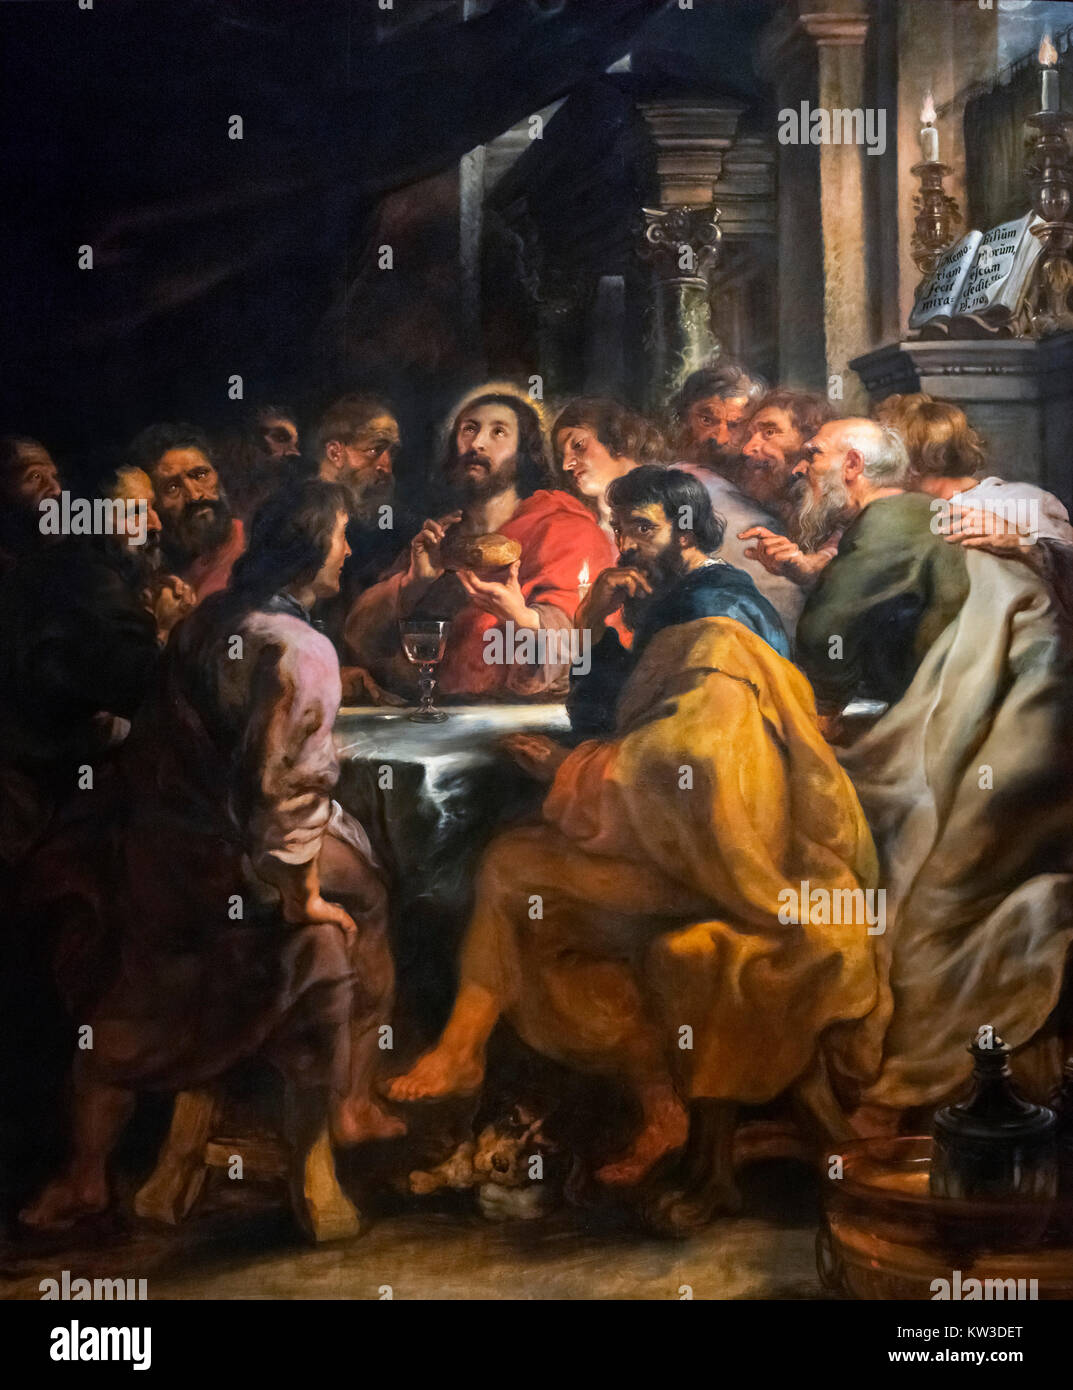 The Last Supper by Sir Peter Paul Rubens (c.1577-1640), oil on wood, 1631/2 - Stock Image